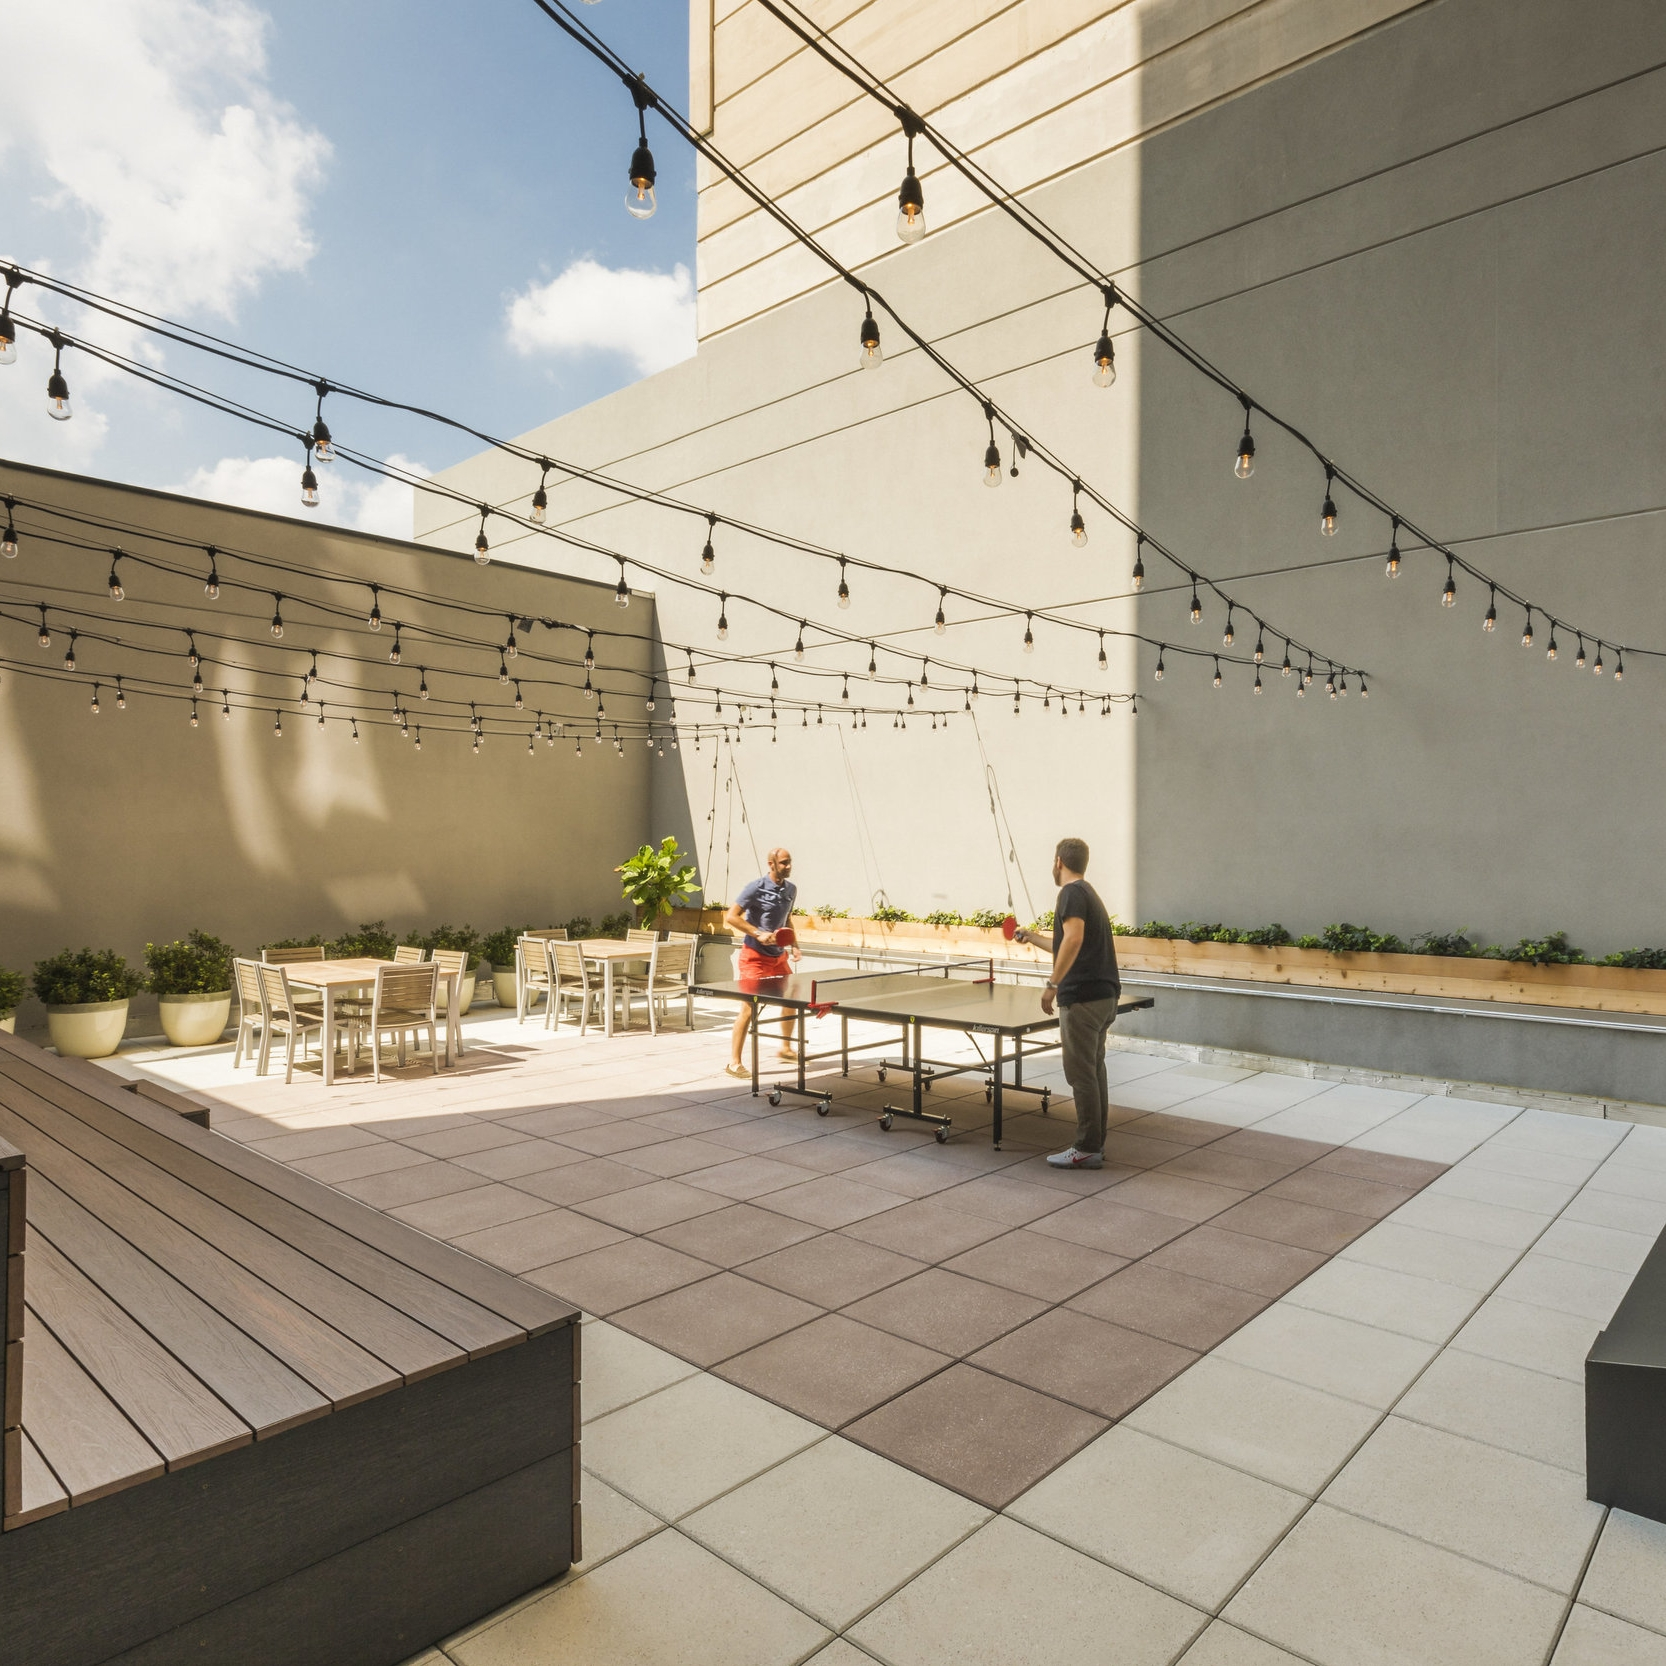 Ping-Pong, Courtyard, Theater